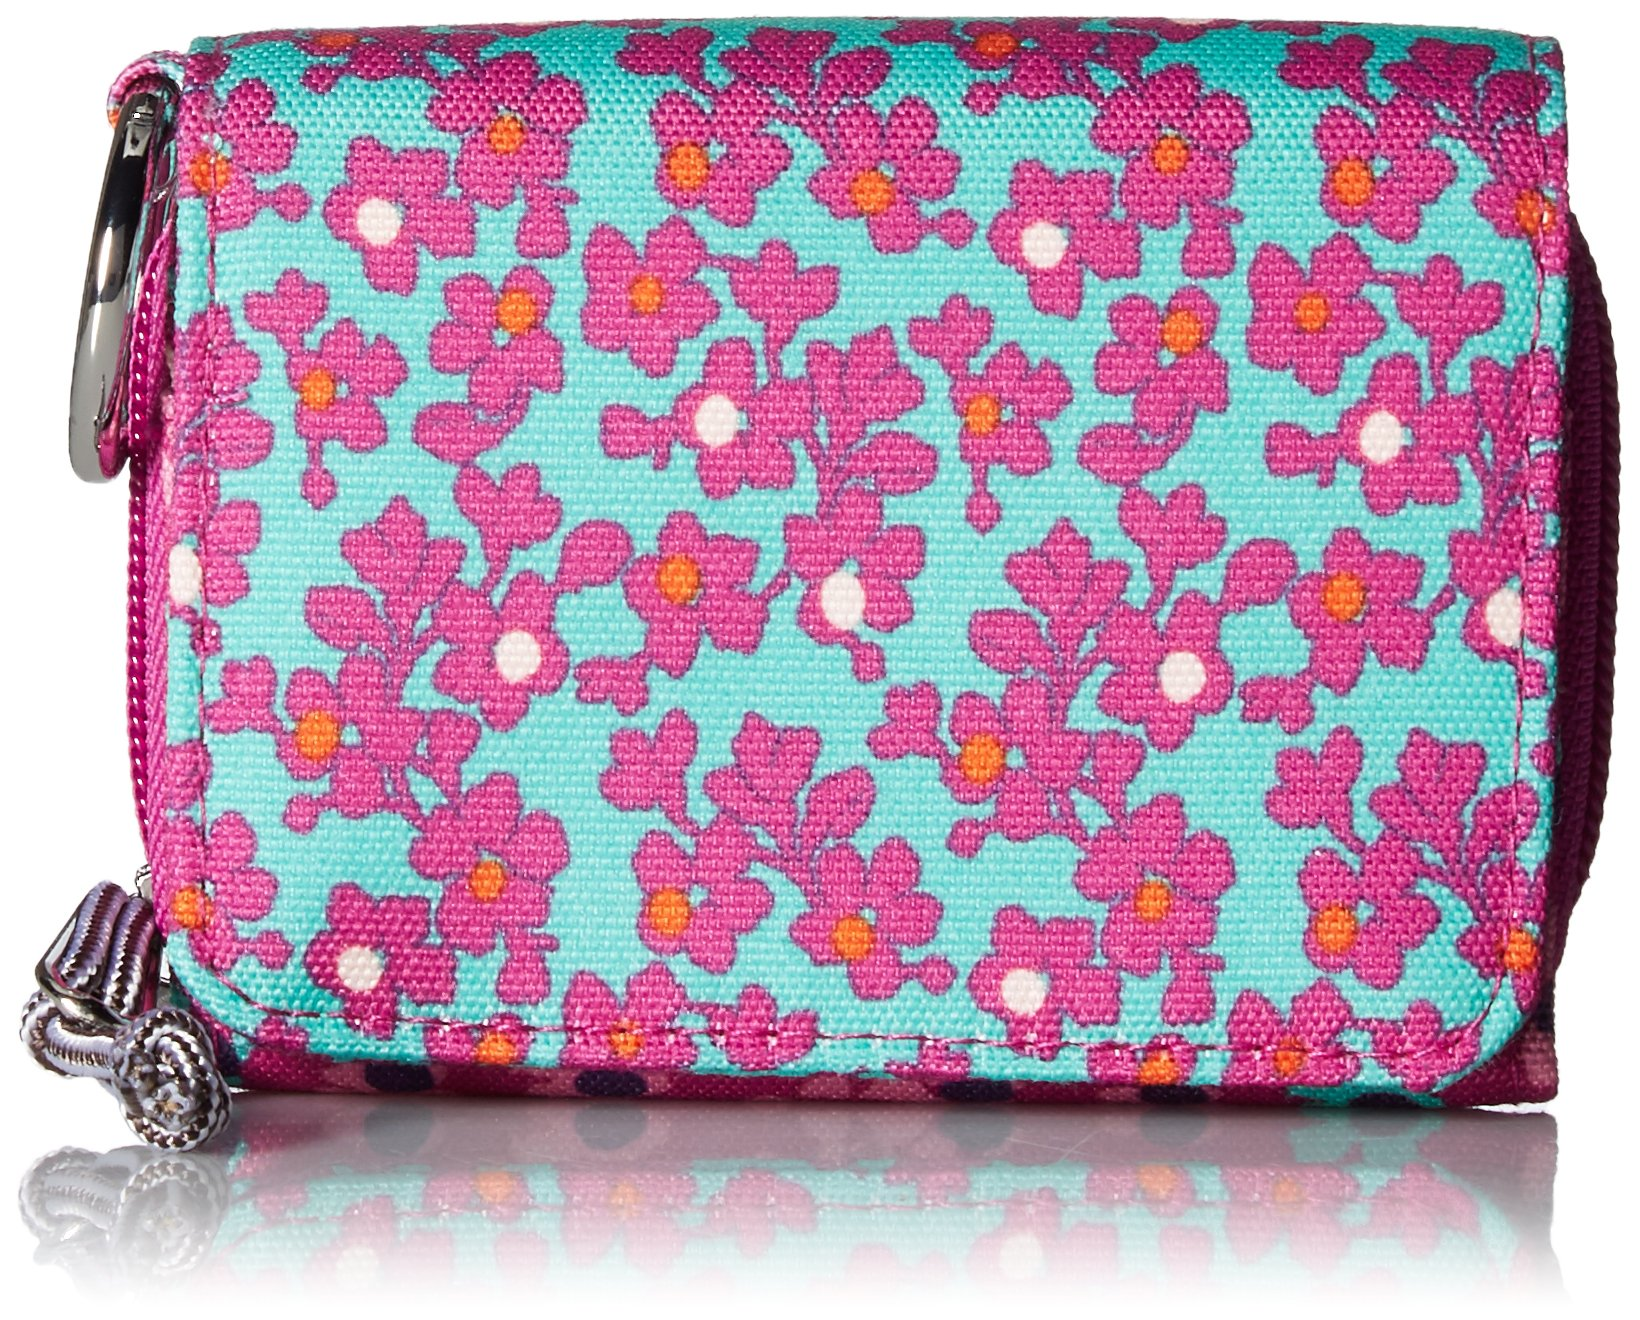 Vera Bradley Women's Lighten Up Printed Dot RFID Card Case, Ditsy, One Size